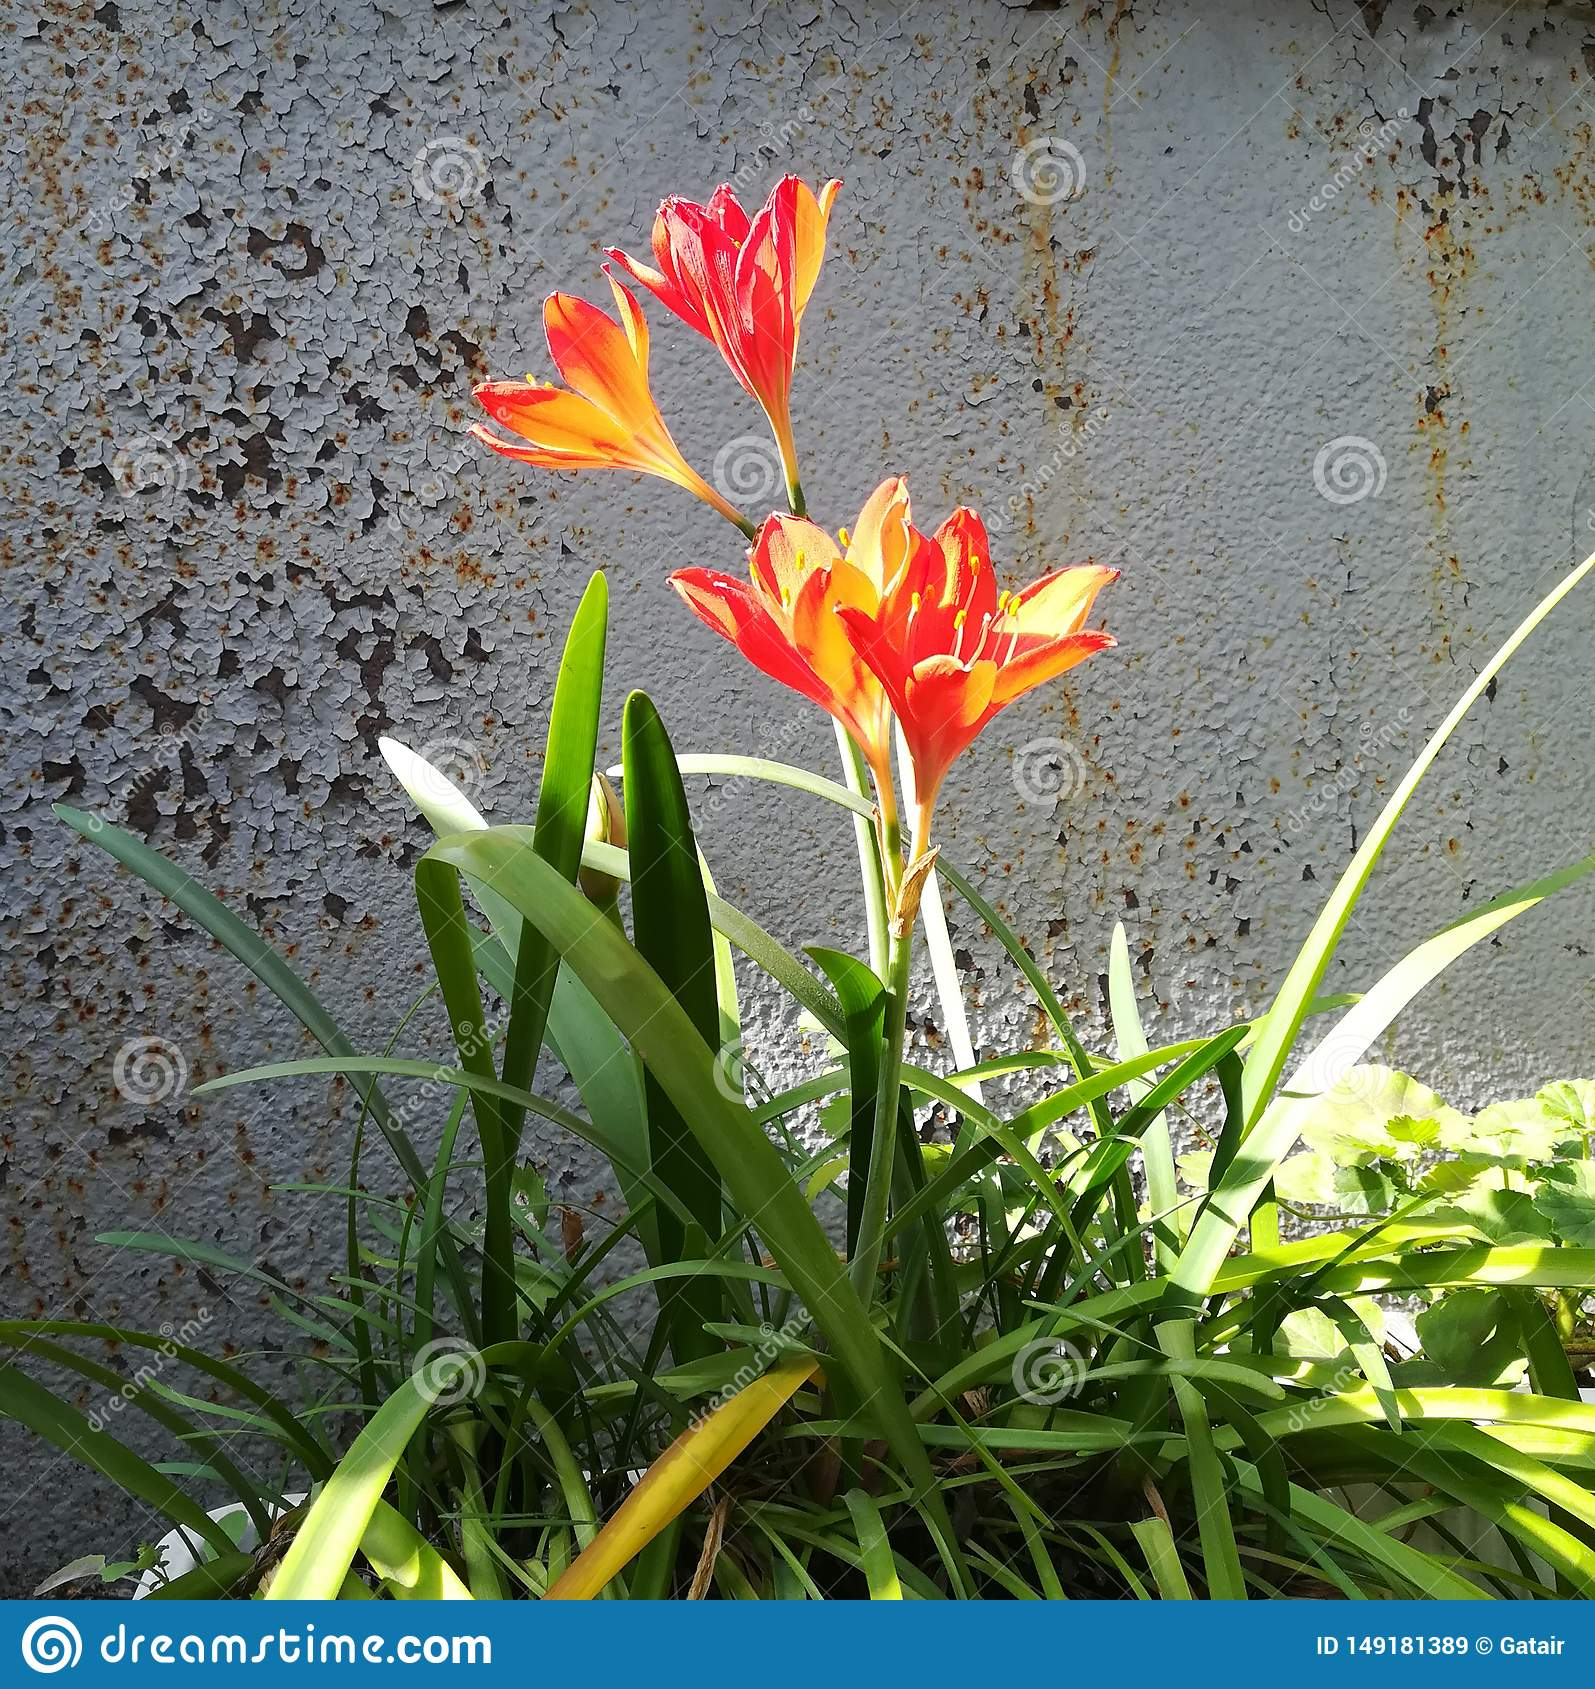 red lily with green leaves on grey grunge background